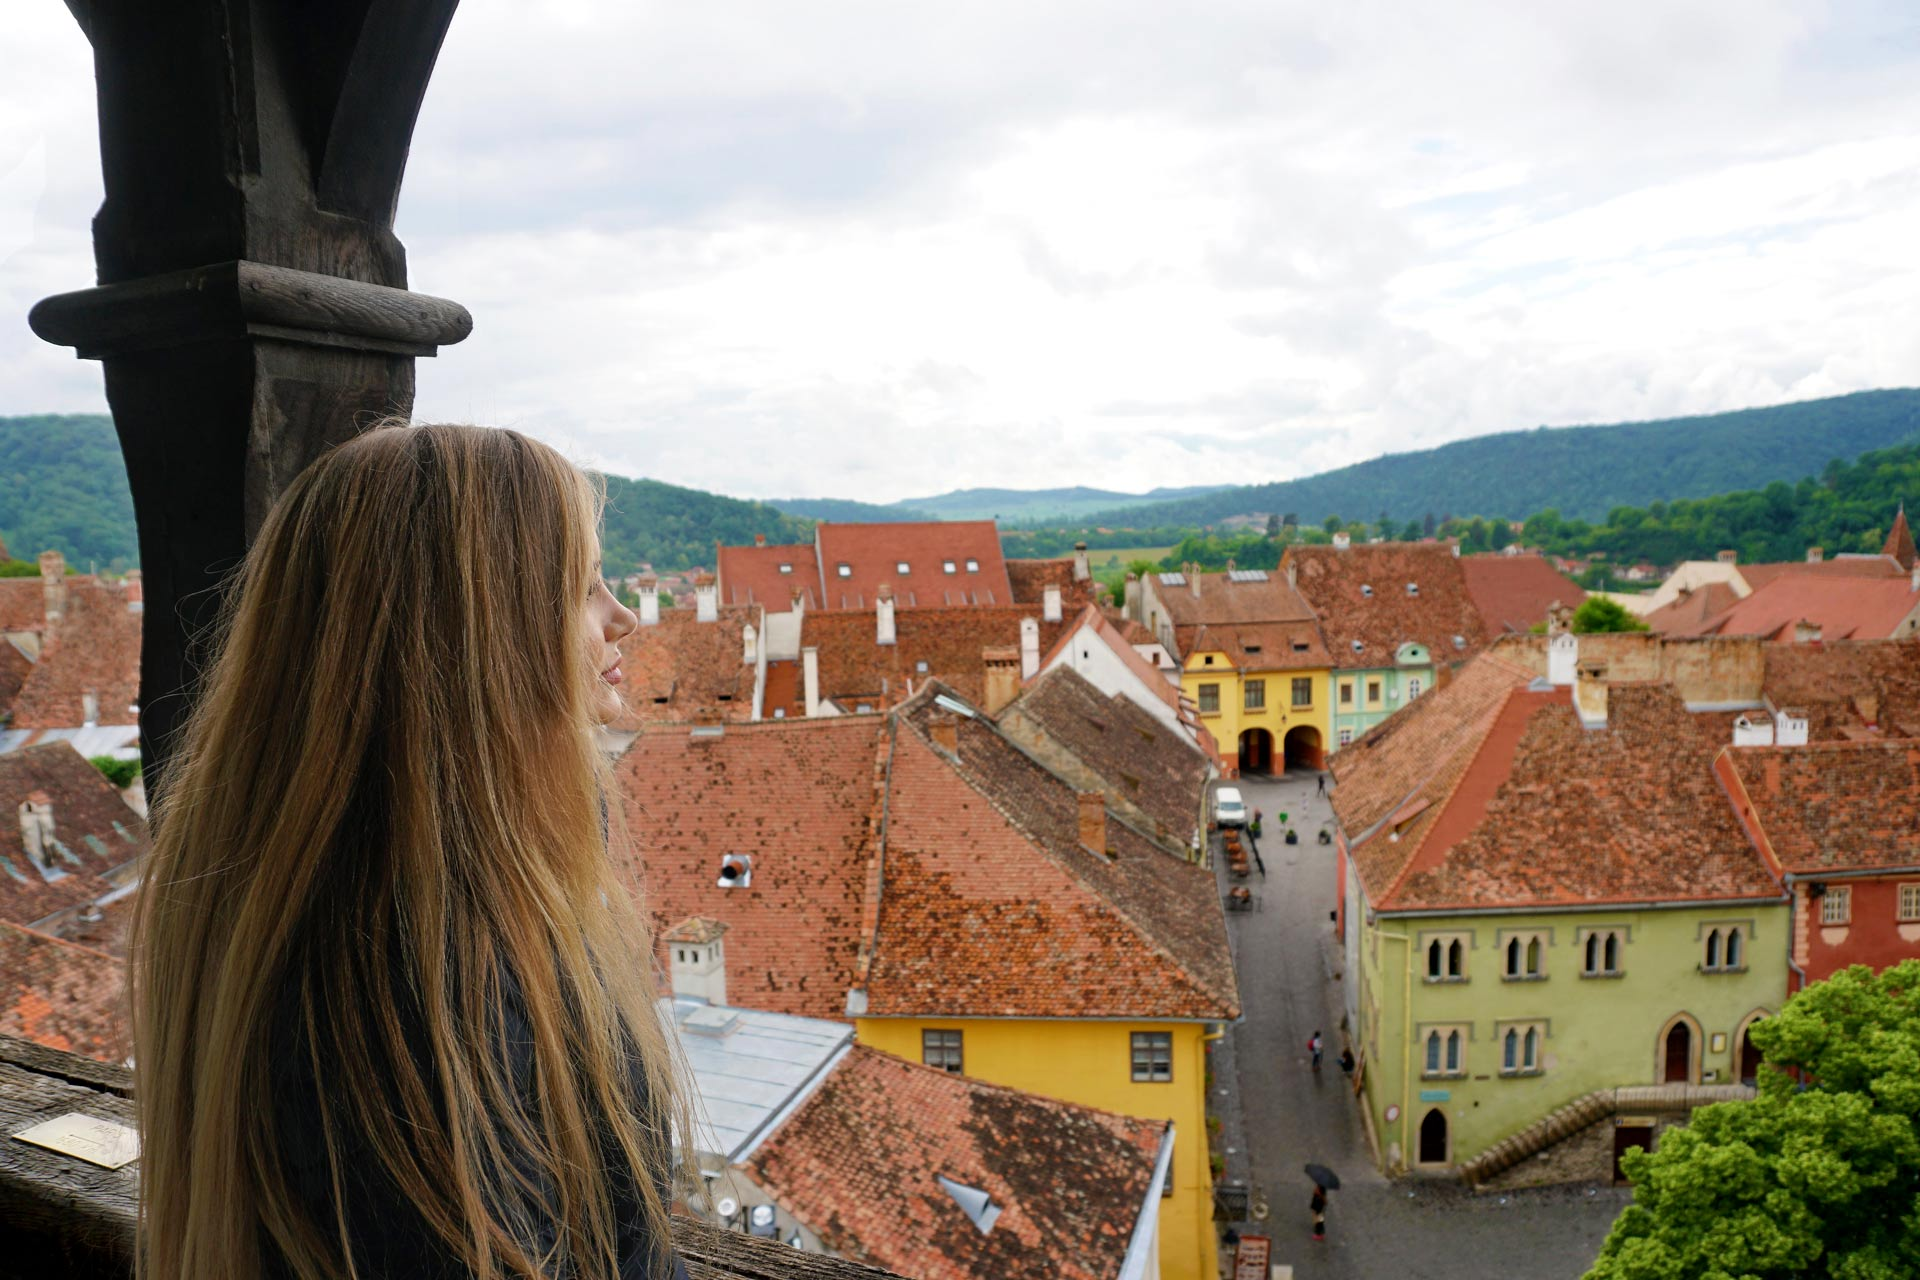 Hanging out the council tower for the best view in Sighisoara, Transylvania, Romania Cali Girl Travels World.